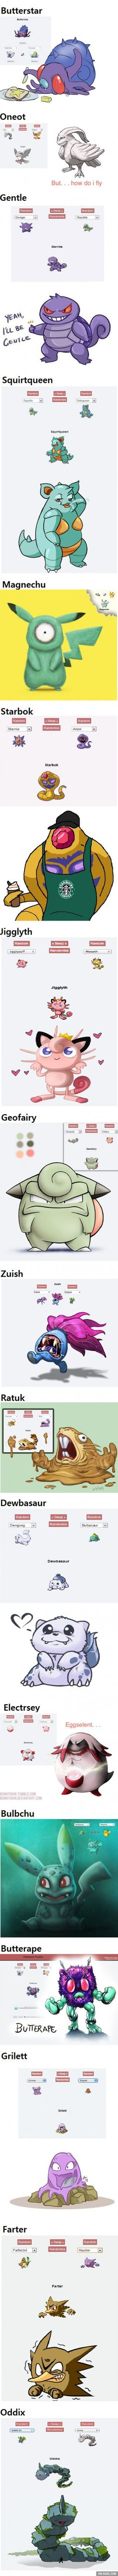 17 Hilarious Pokemon fusions that might be better than the originals